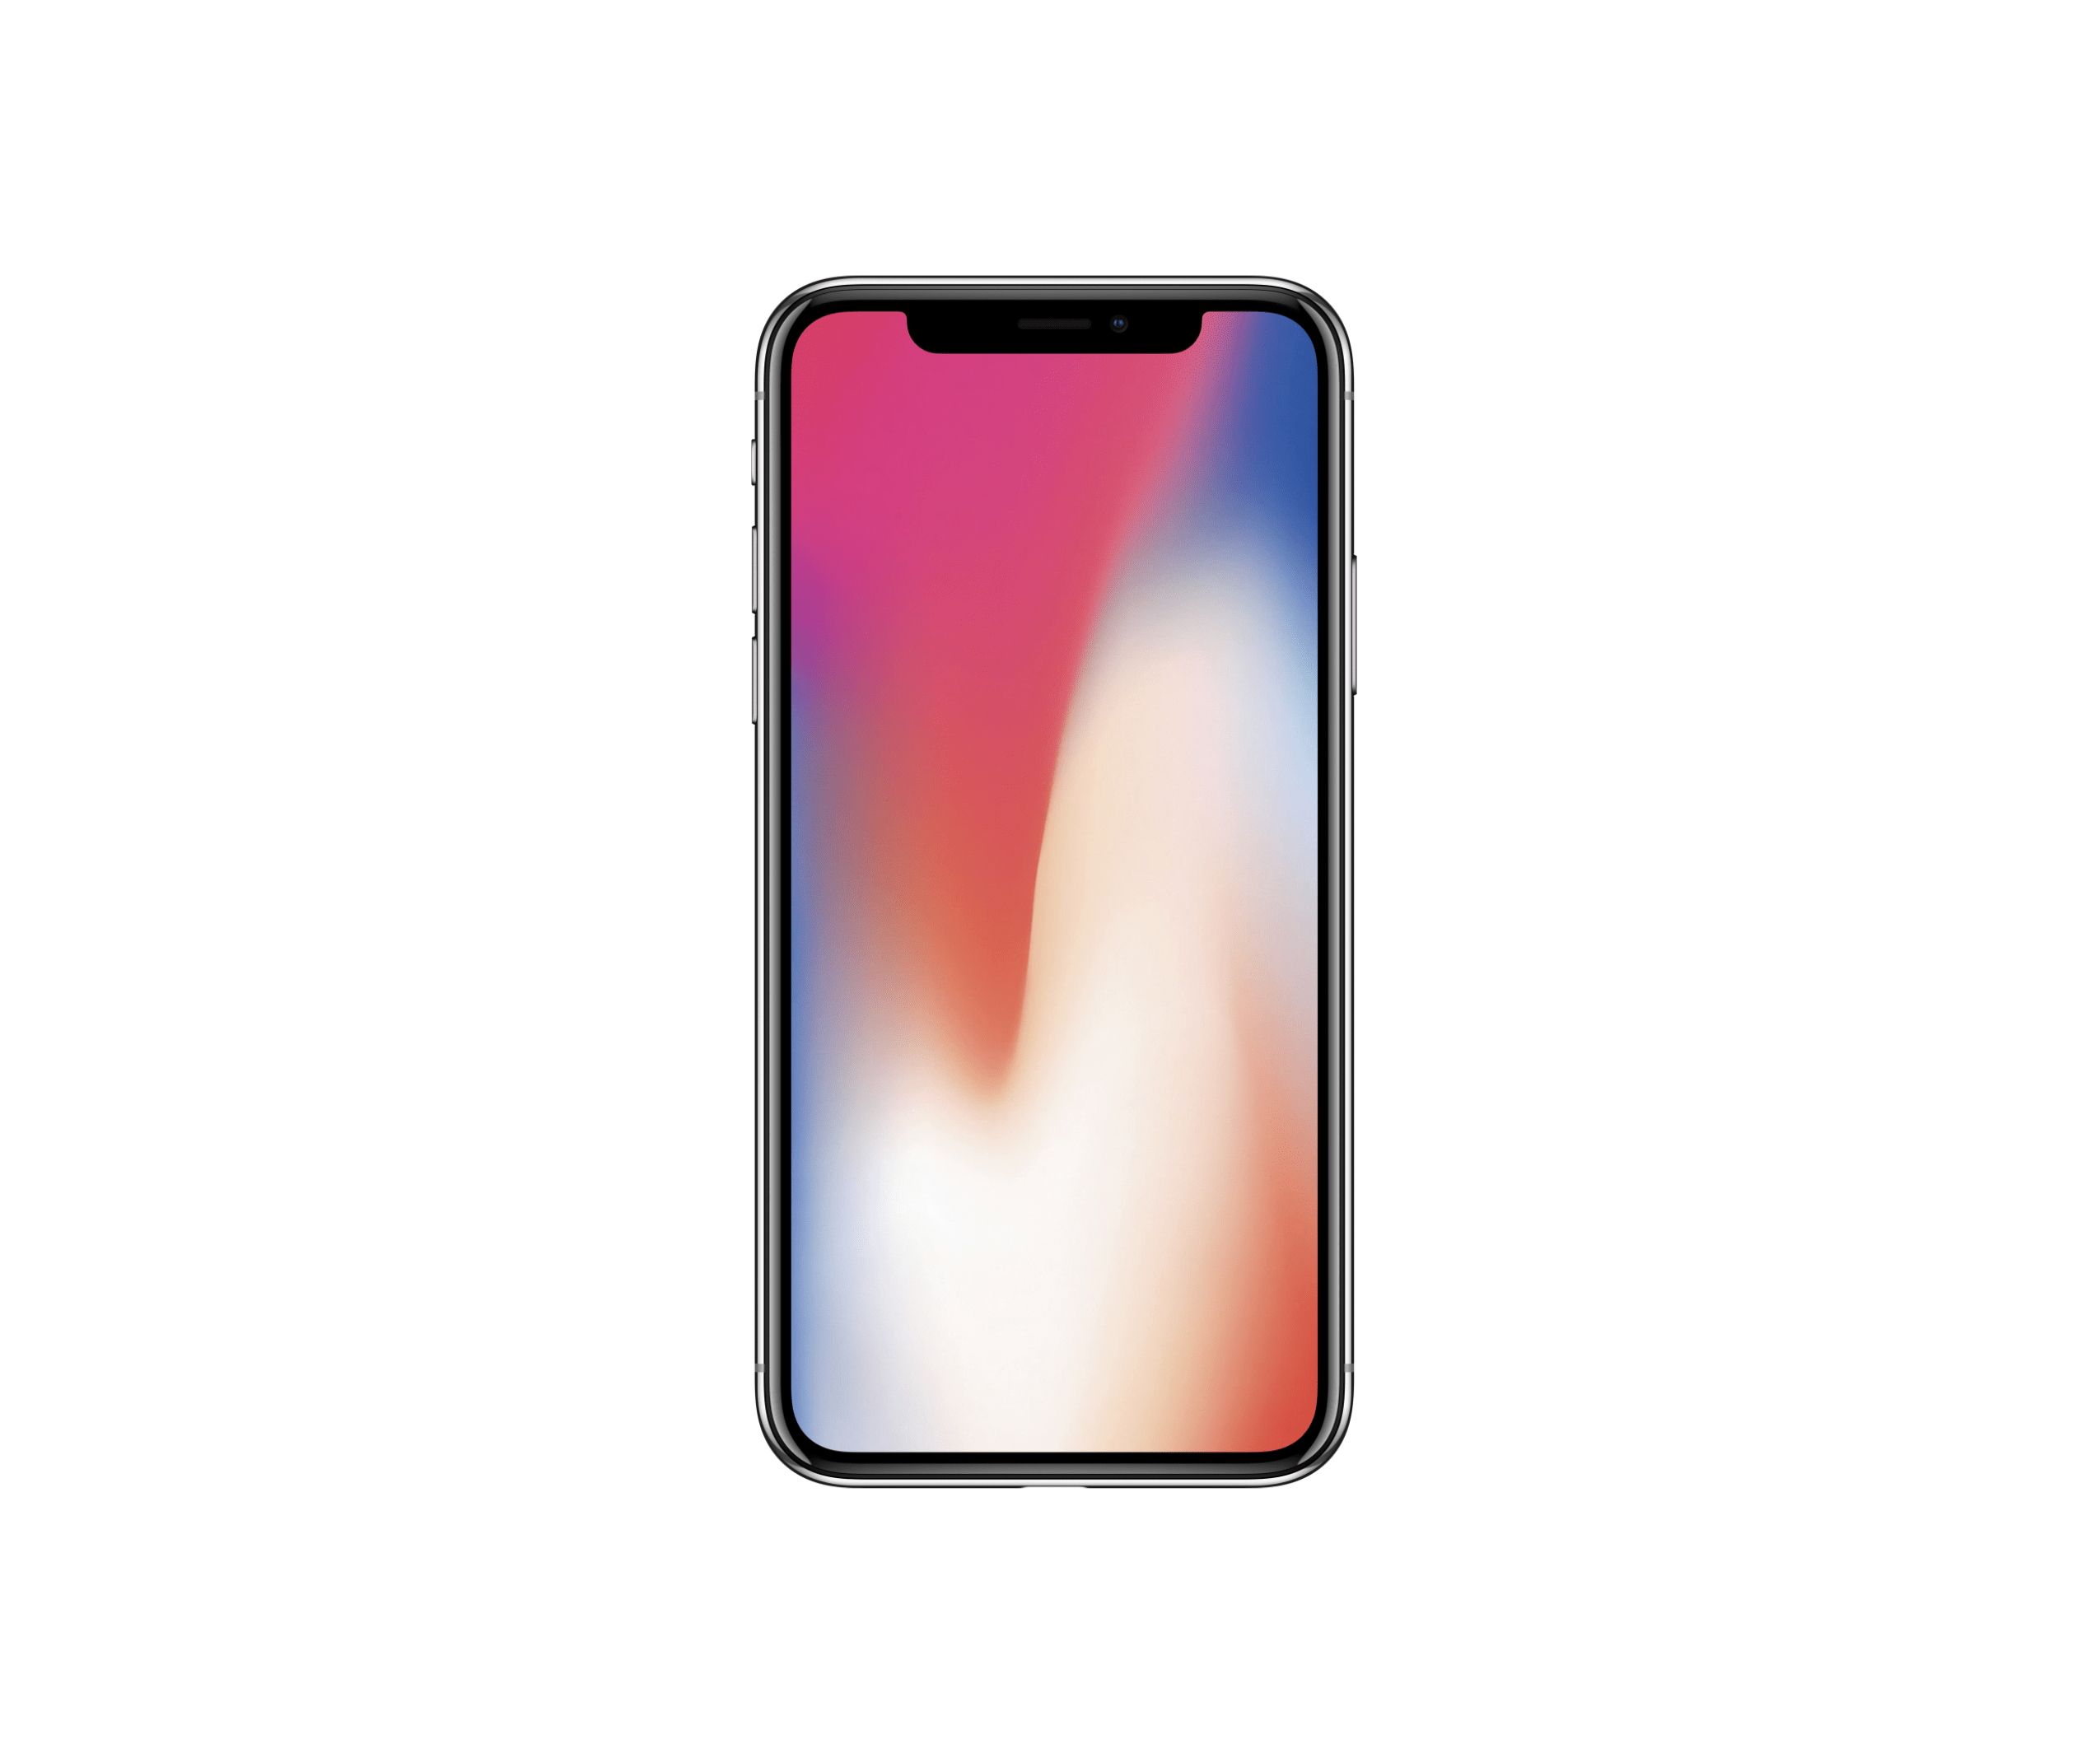 Apple introduces the iPhone X with OLED Display, Face ID ...